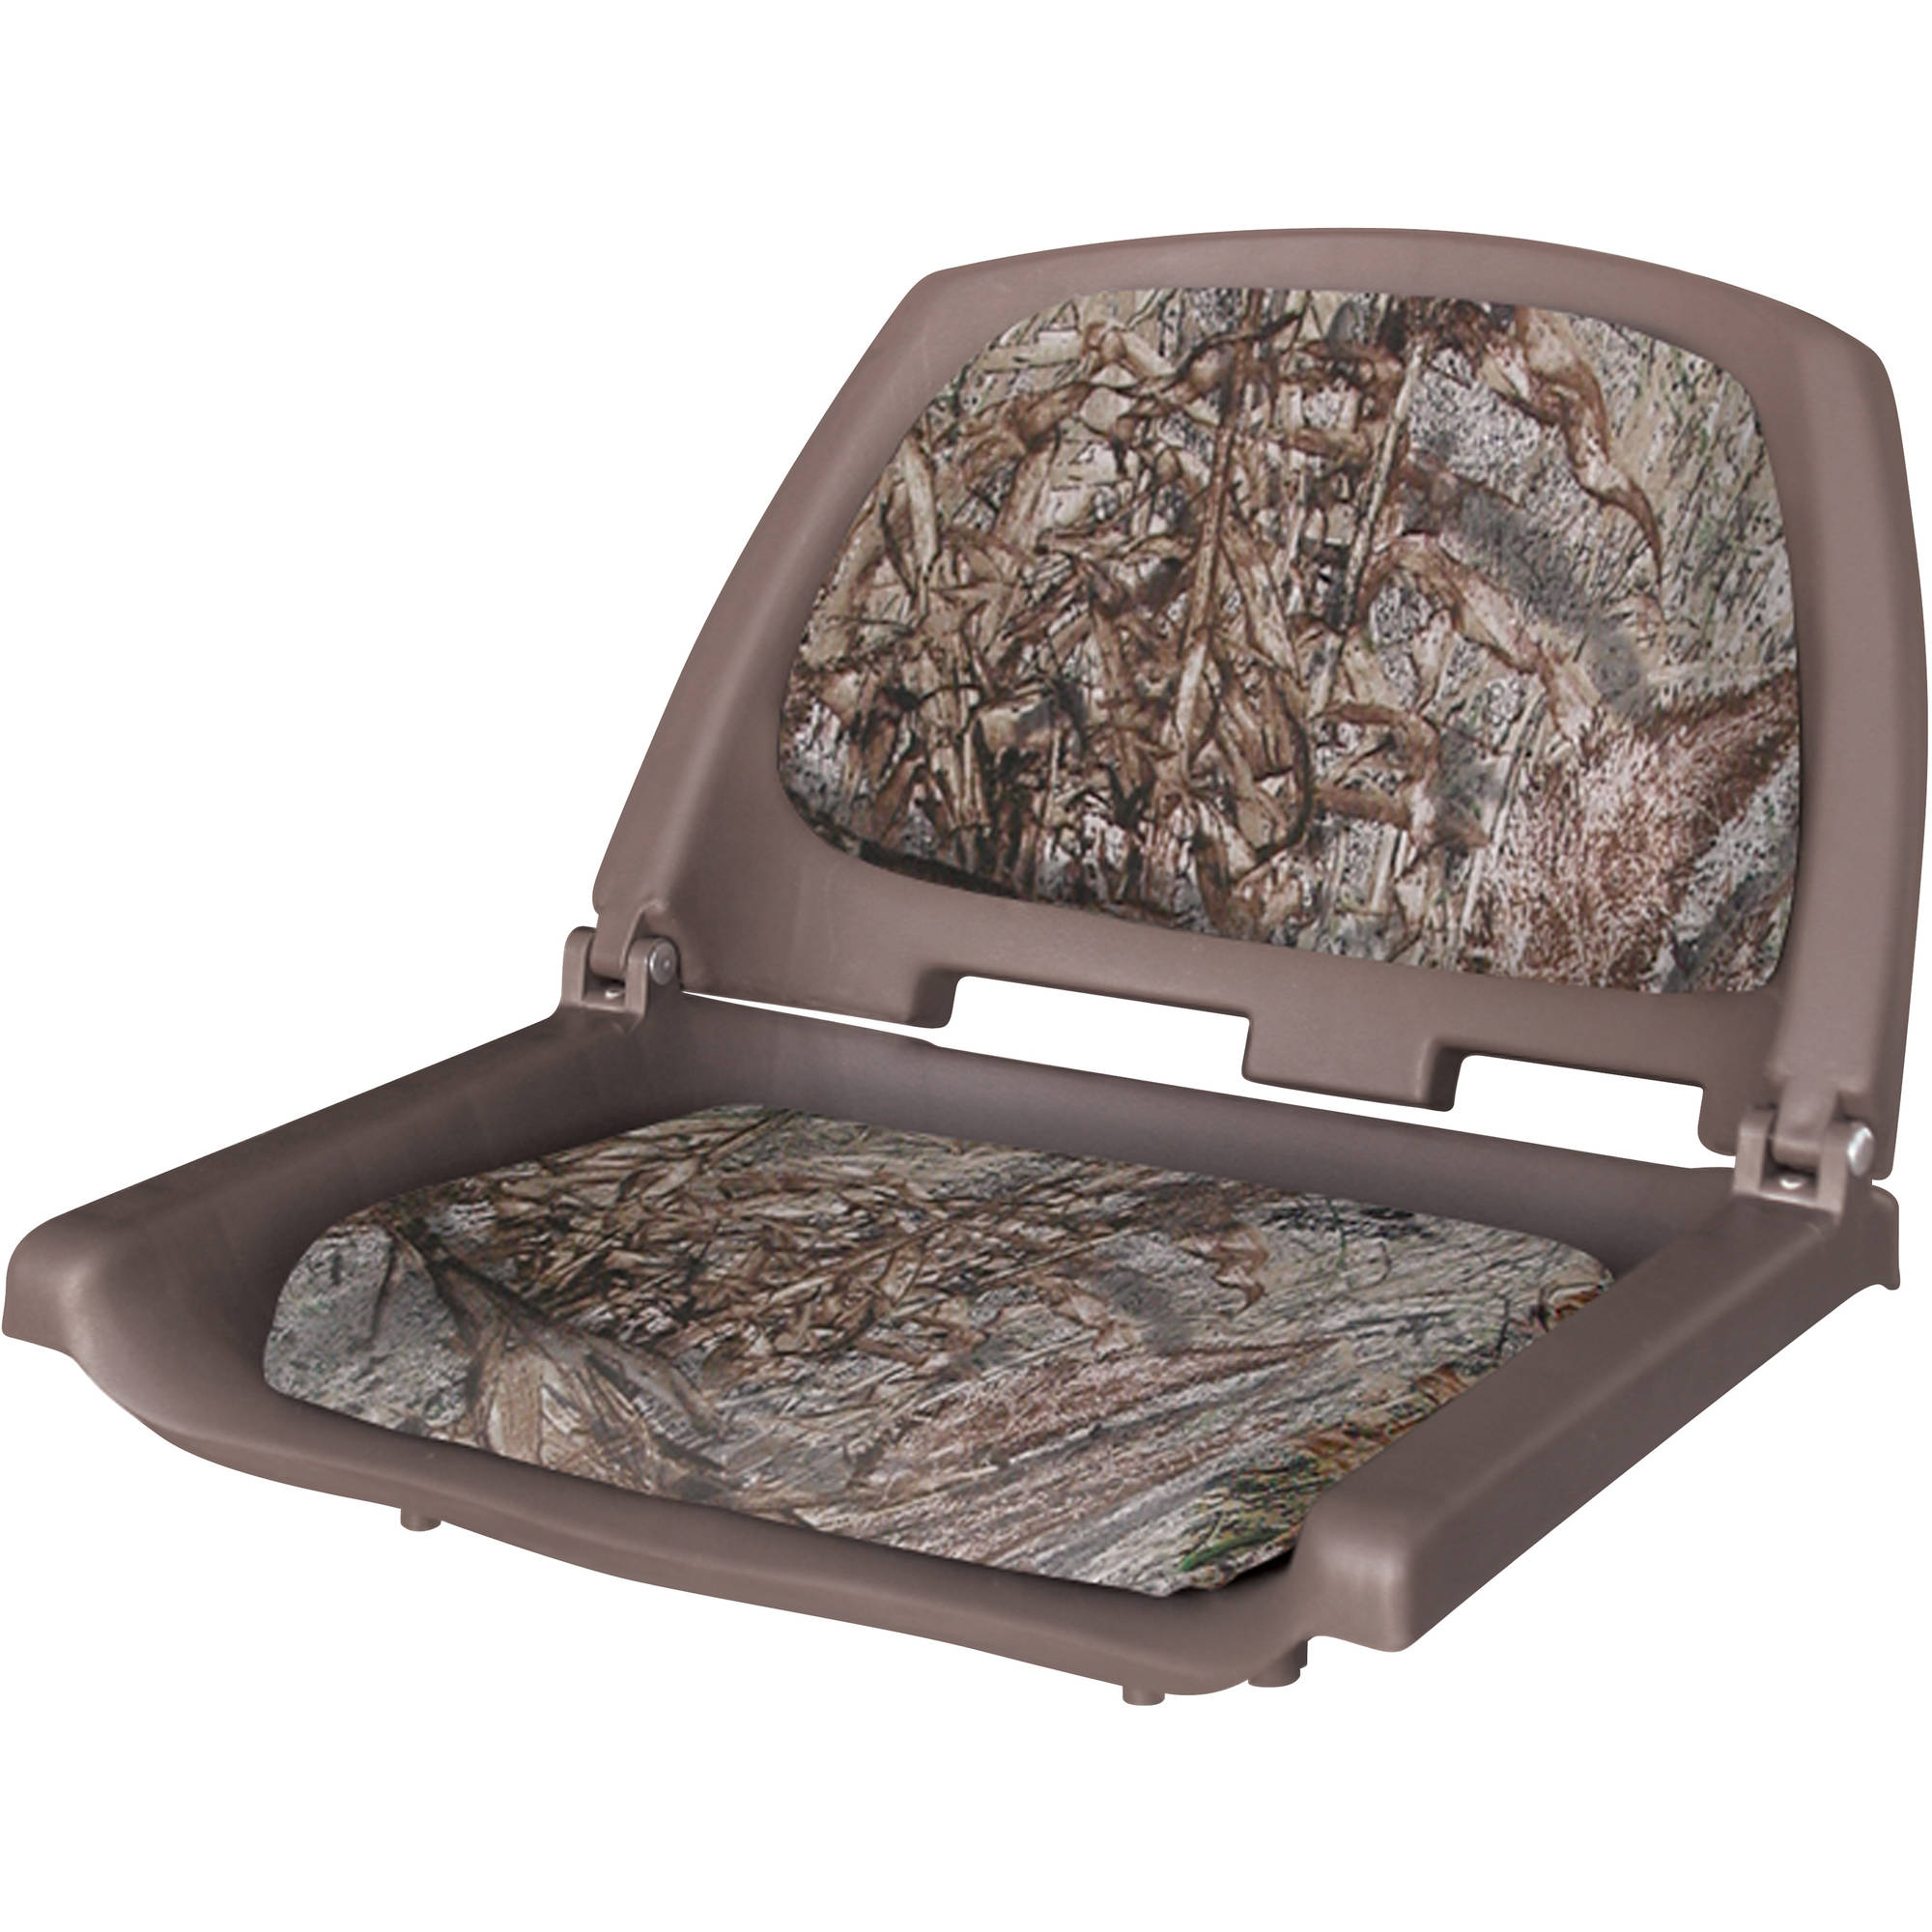 Wise Cordura Camo Fabric Thick Foam Cushions Injection-Molded Seat Frame